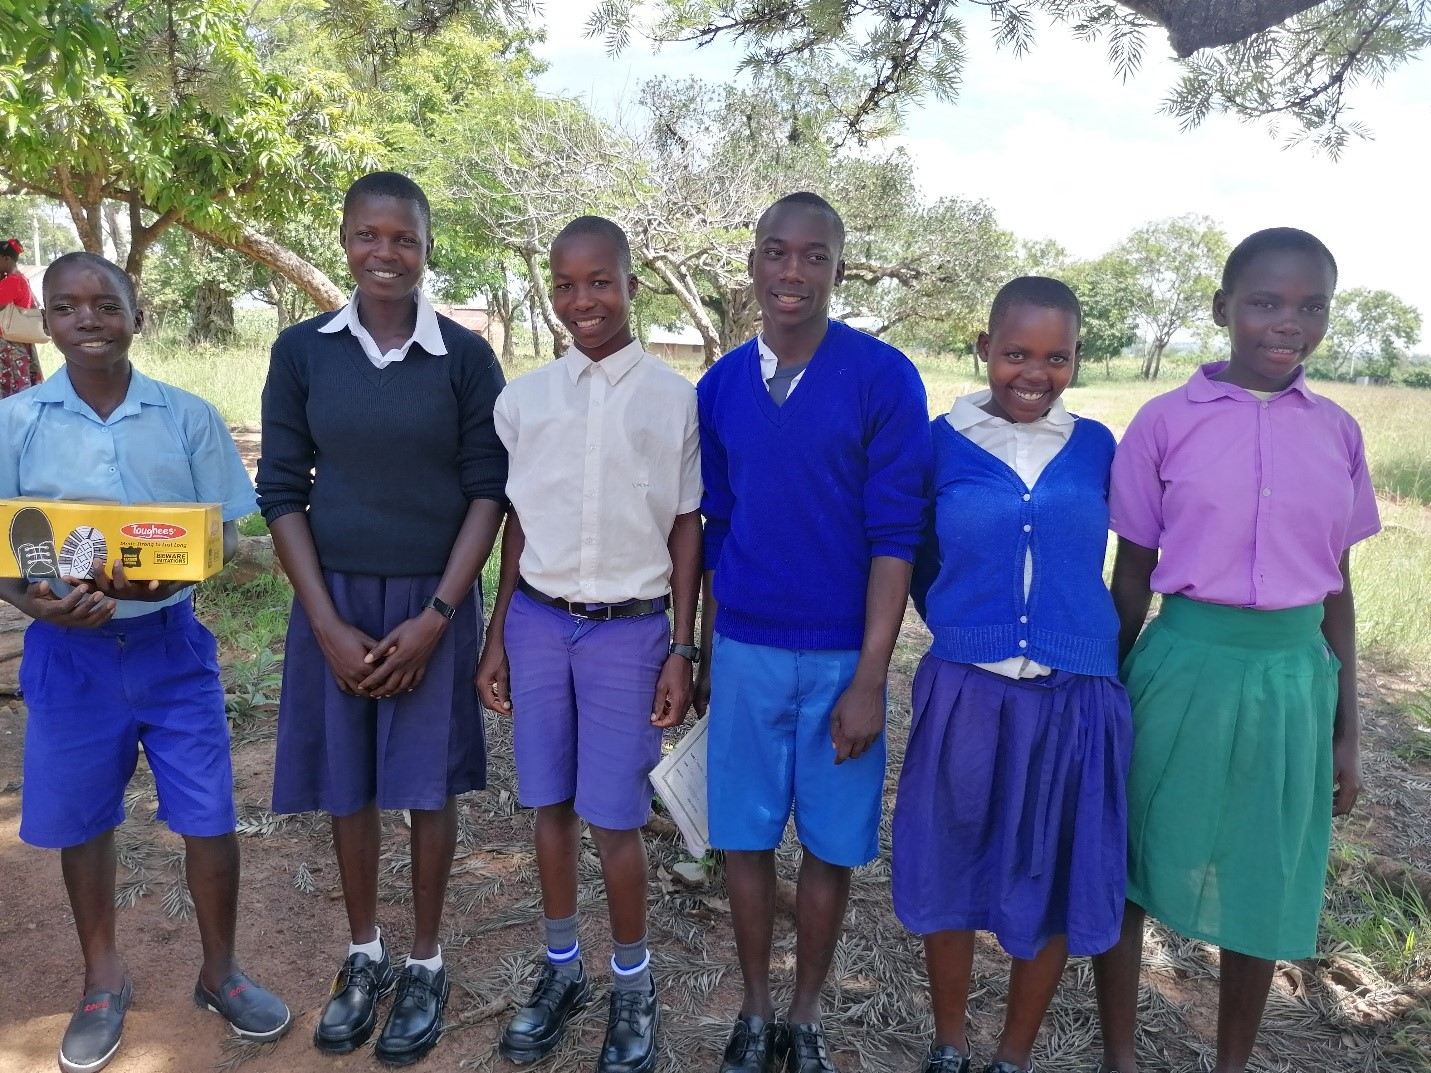 Six students gratefully received scholarships to attend high school thanks to YOU!